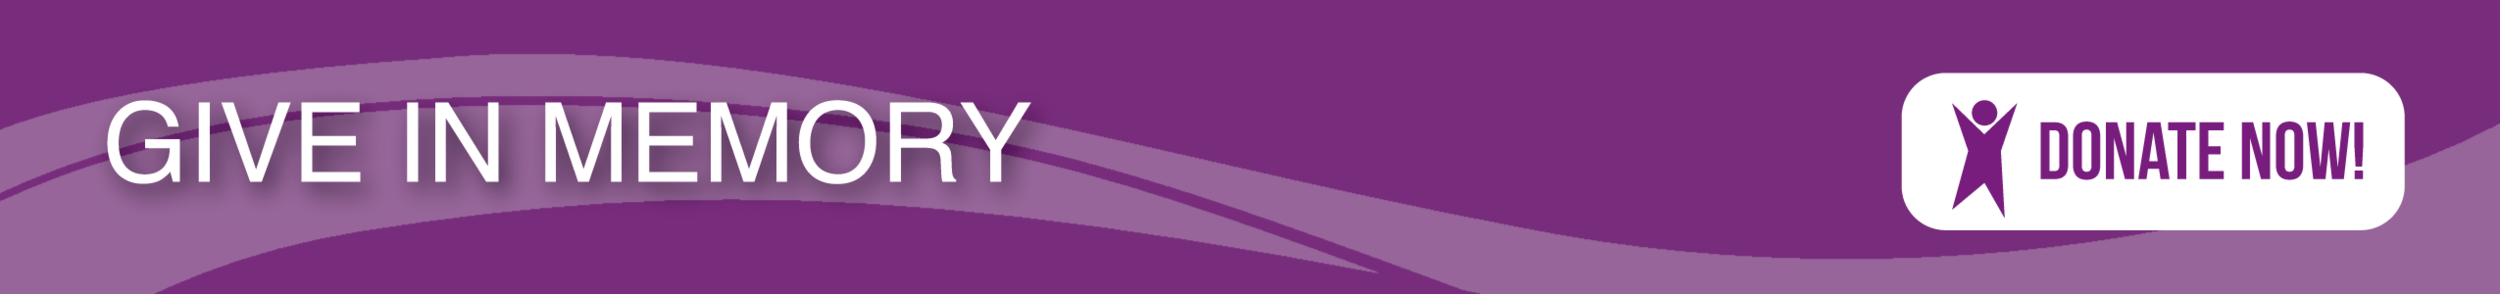 WDHF_HEADER_GIVE IN MEMORY.png